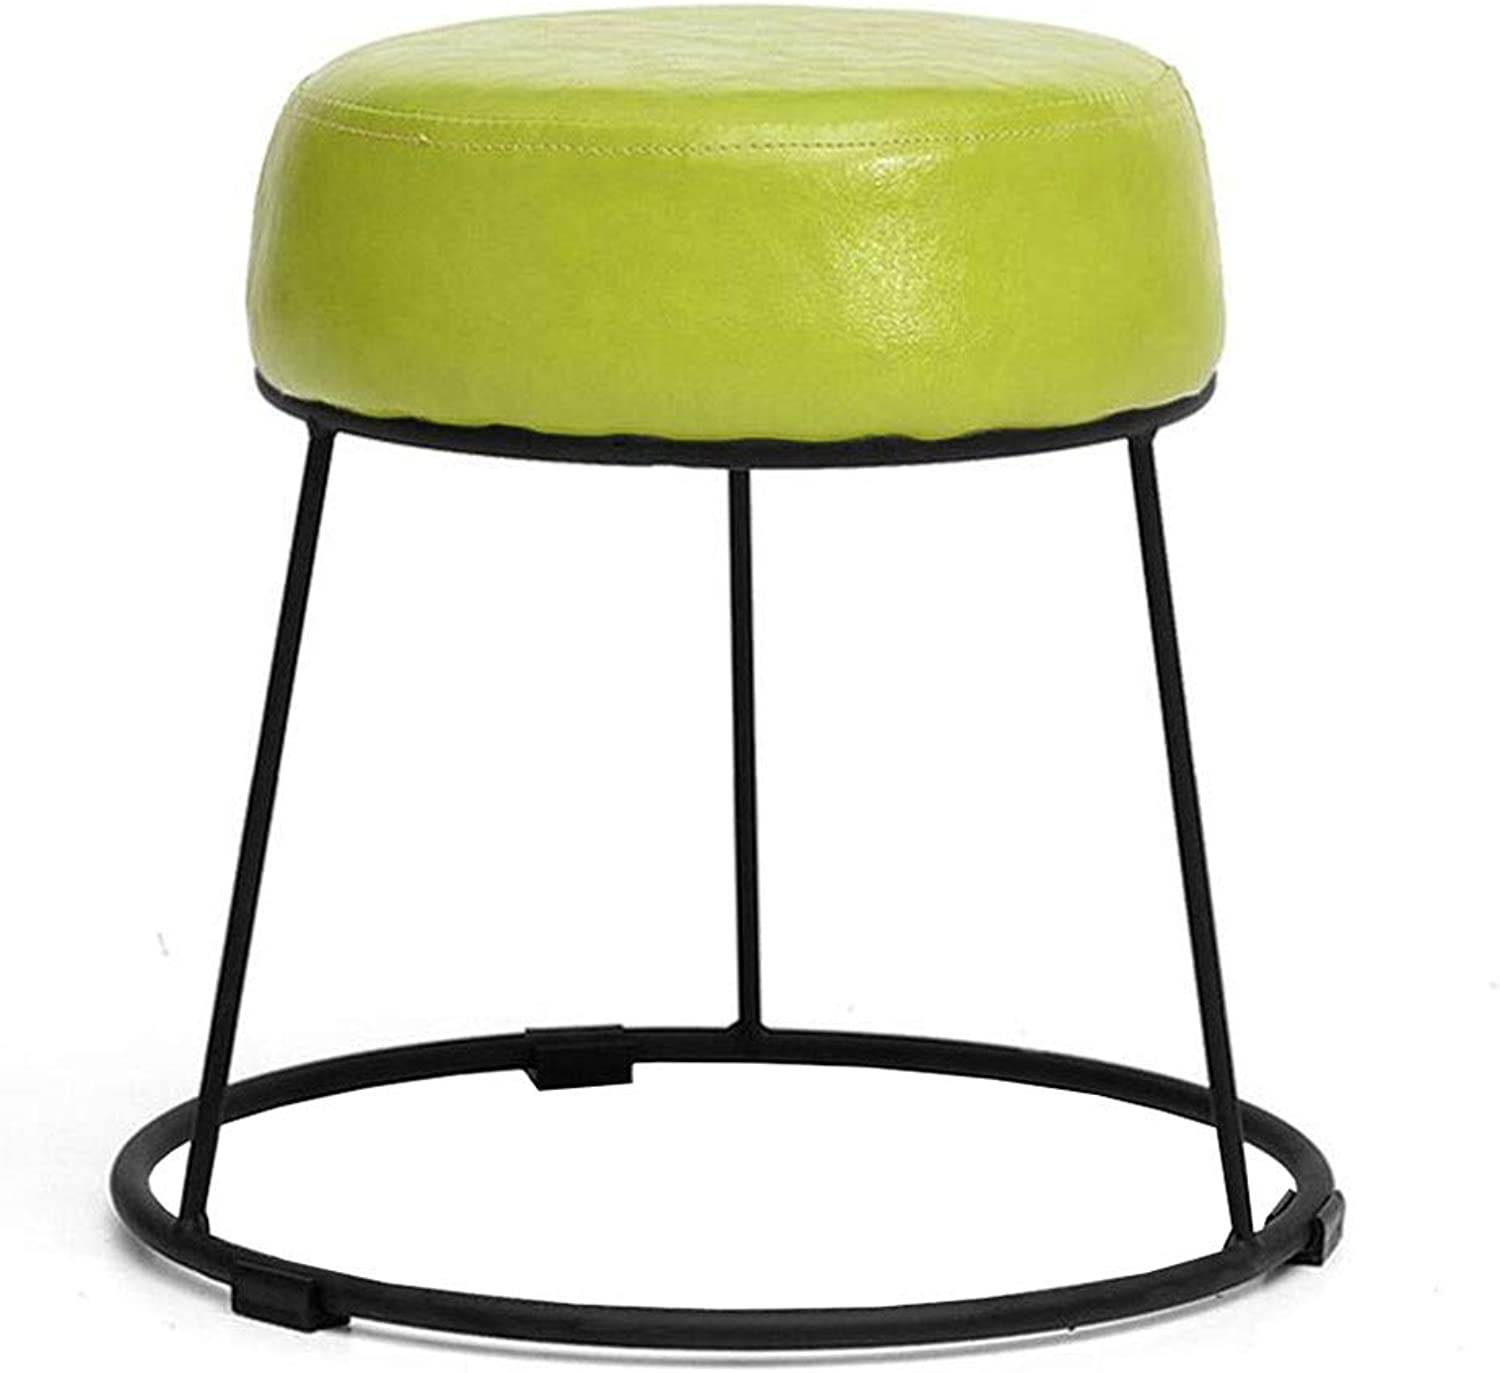 Dall Footstool shoes Bench Metal Frame Fashion Home PU Seat Living Room Sofa Stool Multifunctional, 7 colors (color   Green 1, Size   36cm)